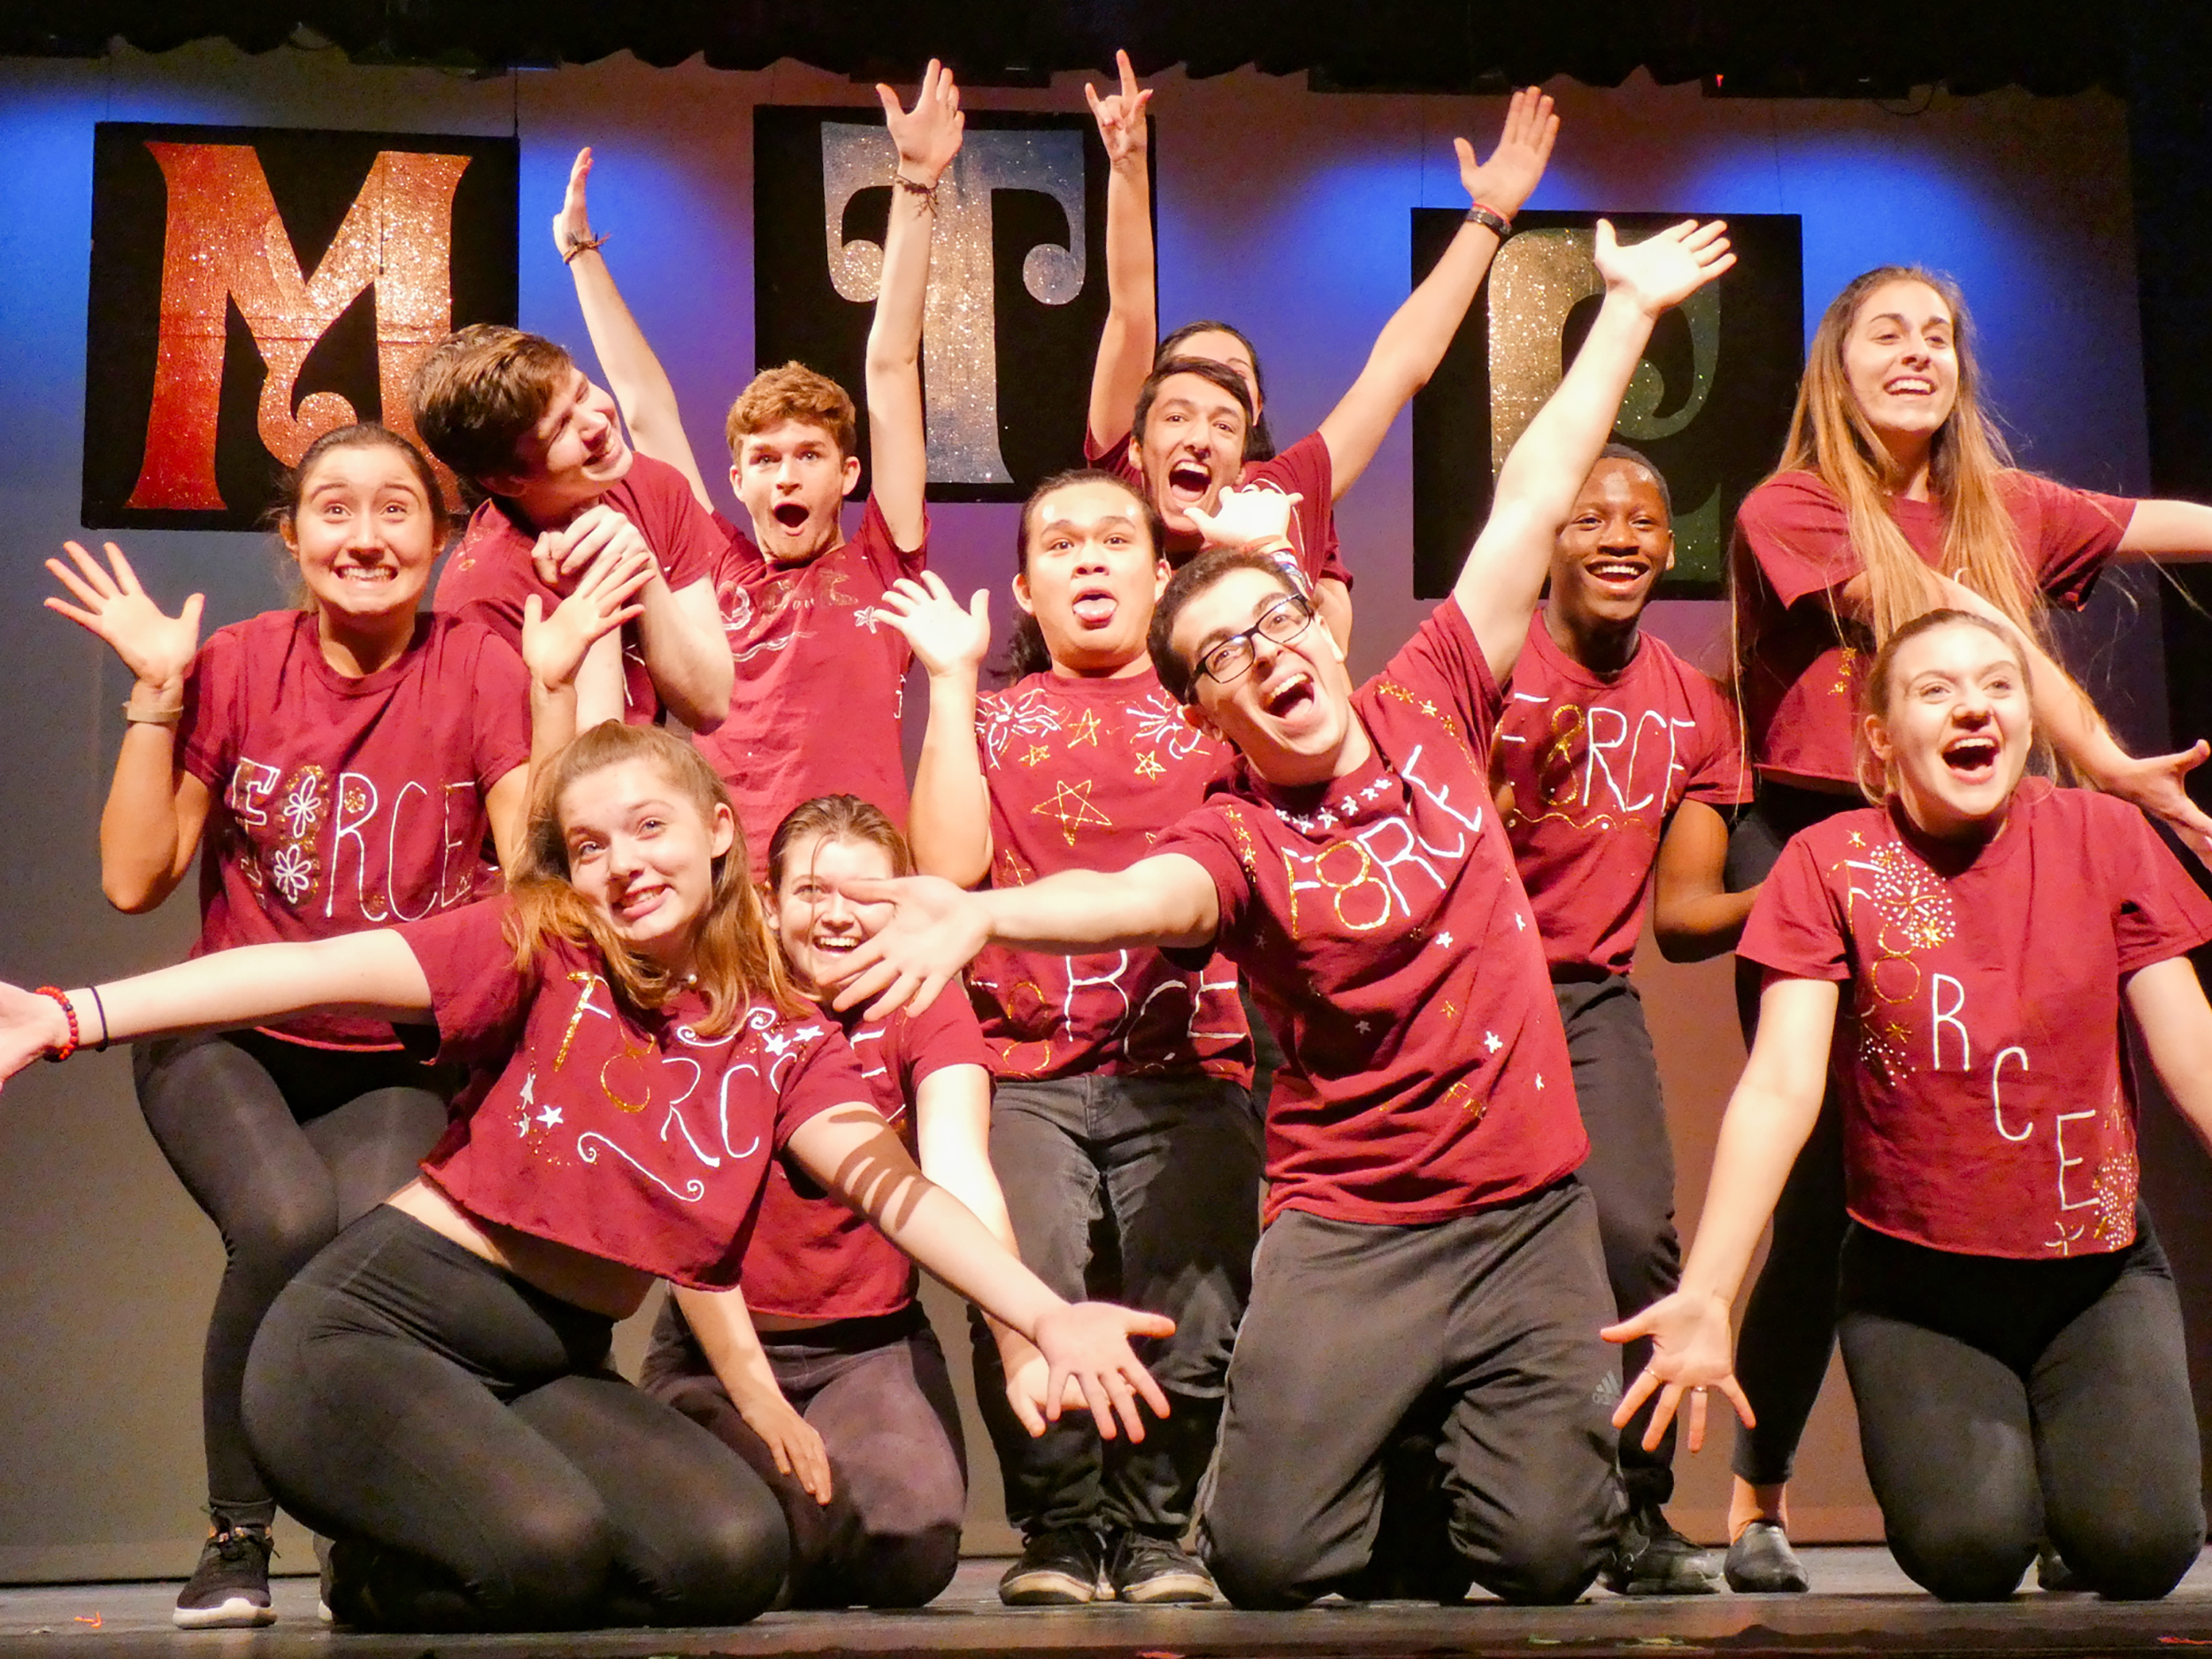 """The student-run show """"MTC:Undercover"""" took place in Wadsworth Auditorium on Friday, Nov. 30 and Saturday Dec. 1. The cast (pictured above) sang songs following an """"undercover"""" theme. (Sophie Yeomans / Staff Photographer)."""